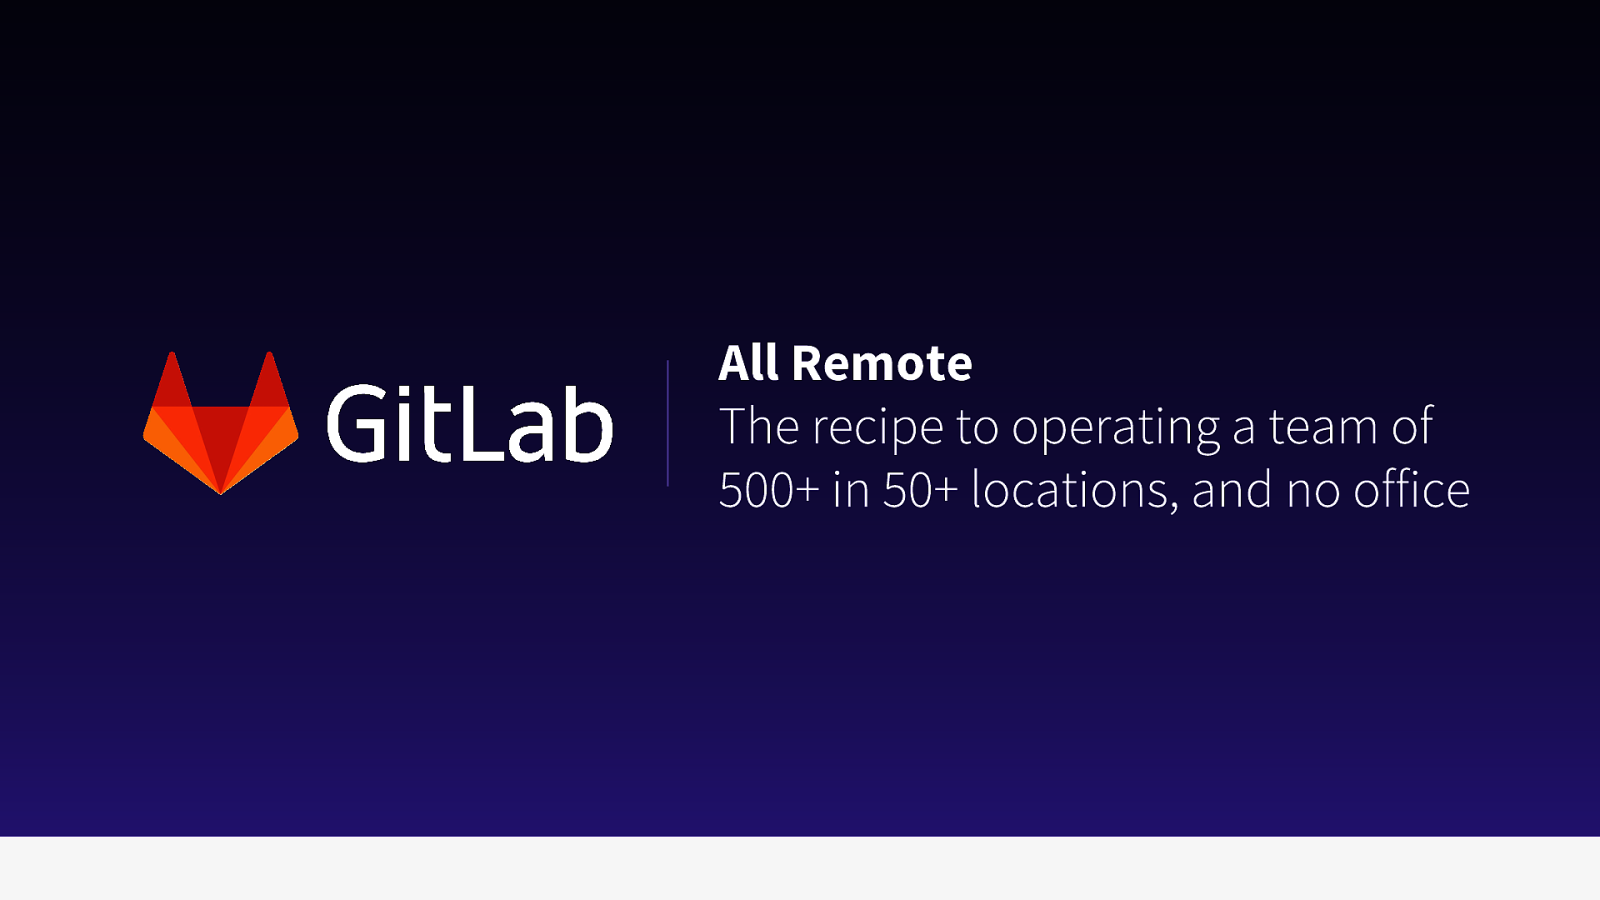 GitLab - All Remote